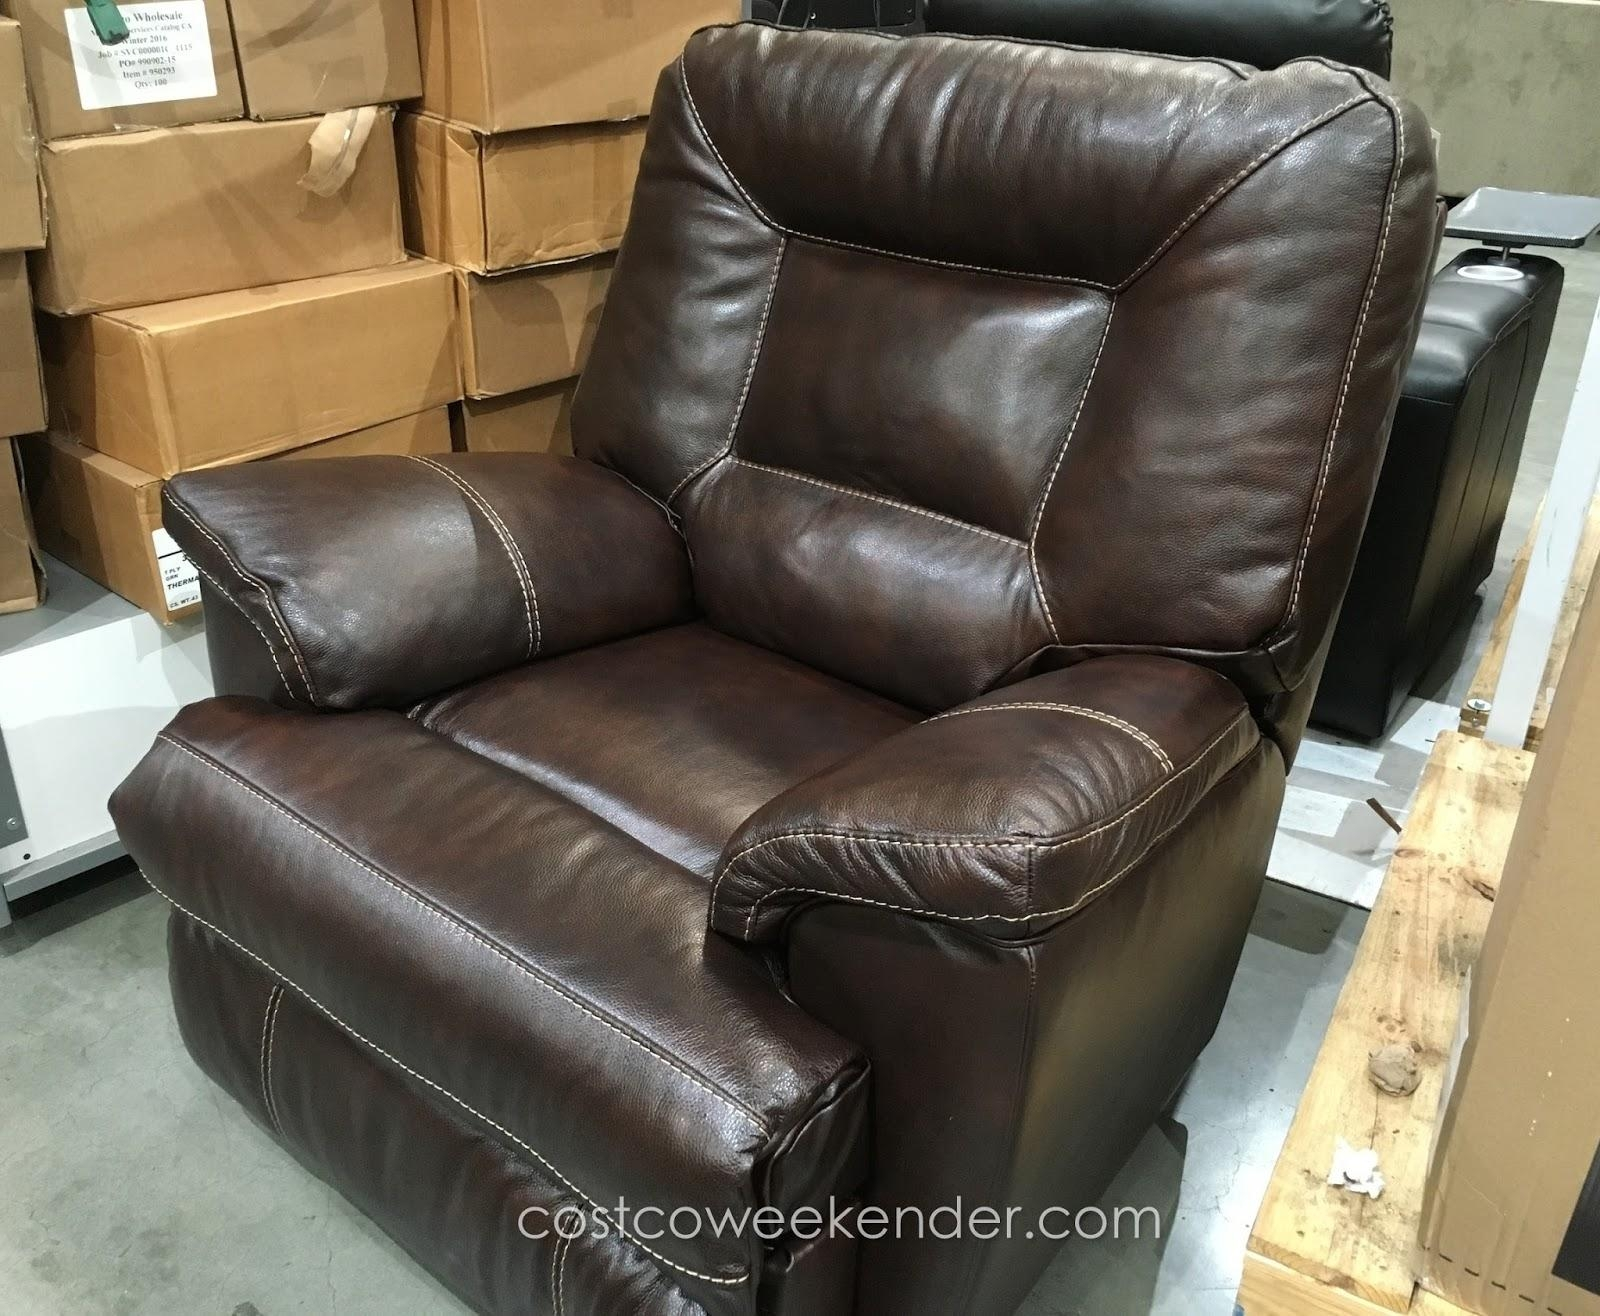 Furniture & Sofa: Enjoy Your Holiday With Costco Home Theater With Berkline Recliner Sofas (Image 3 of 20)